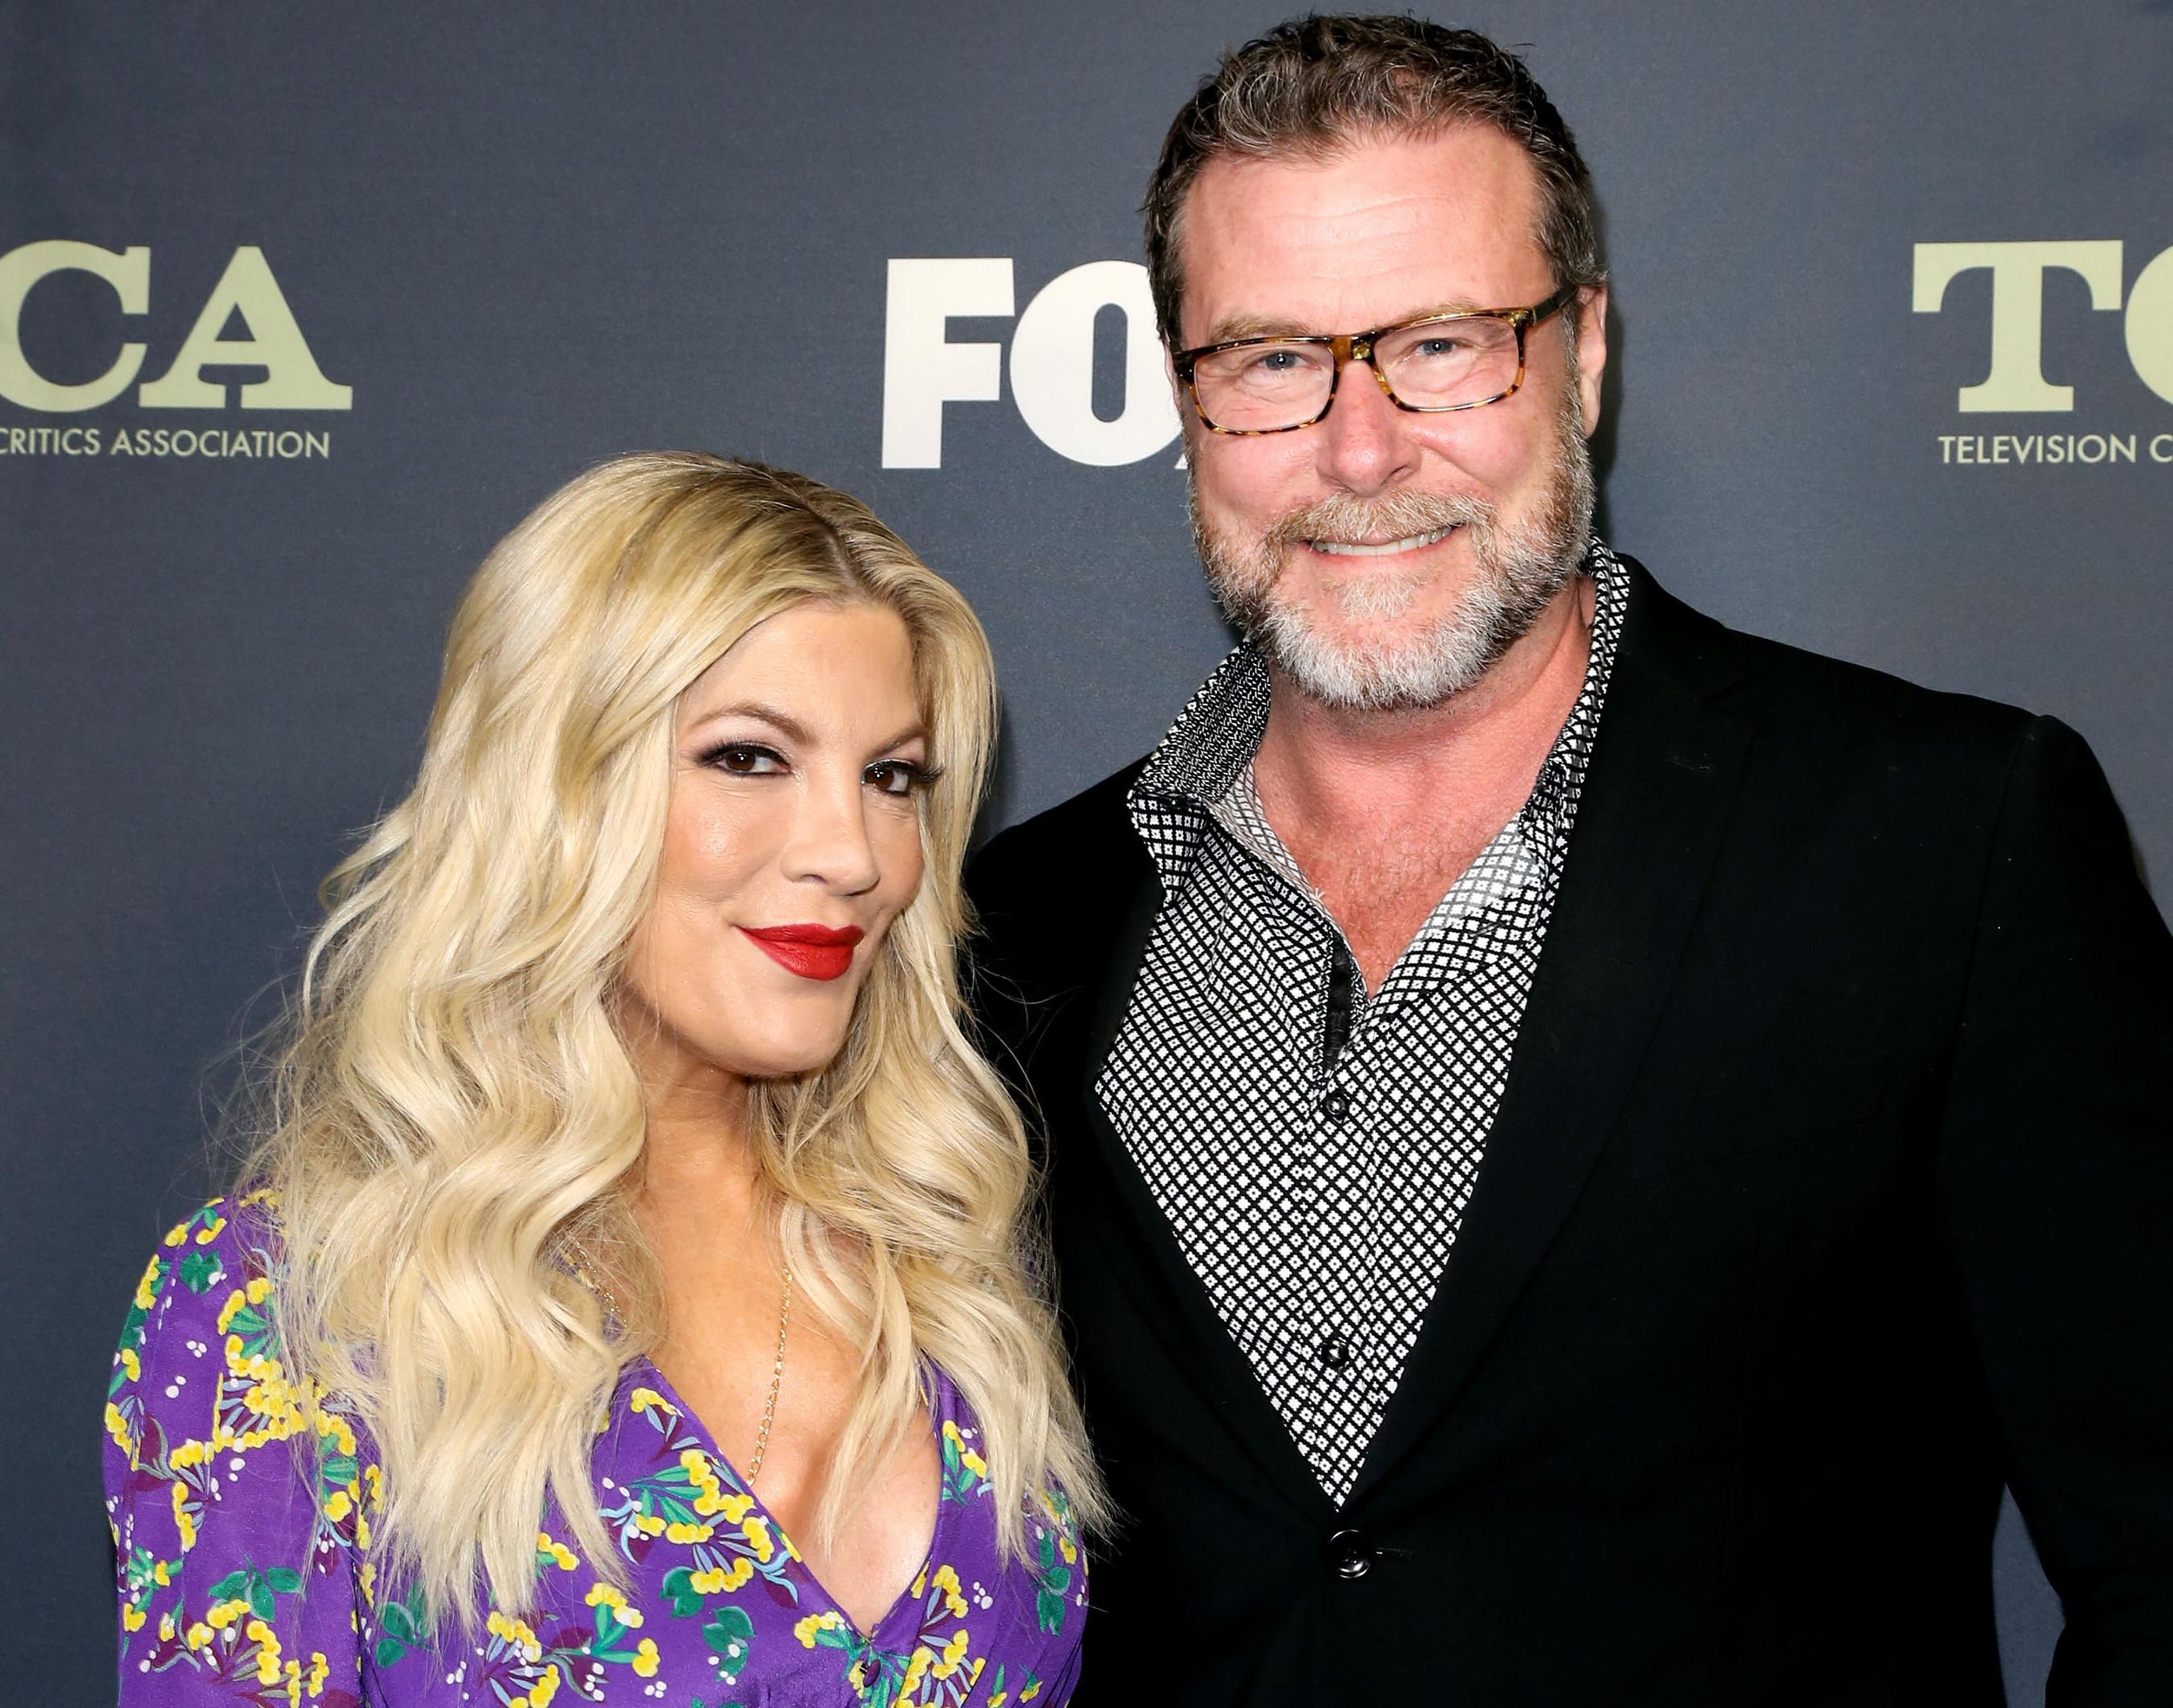 Tori Spelling and Dean McDermott - IMAGE: PAUL ARCHULETA/FILMMAGIC